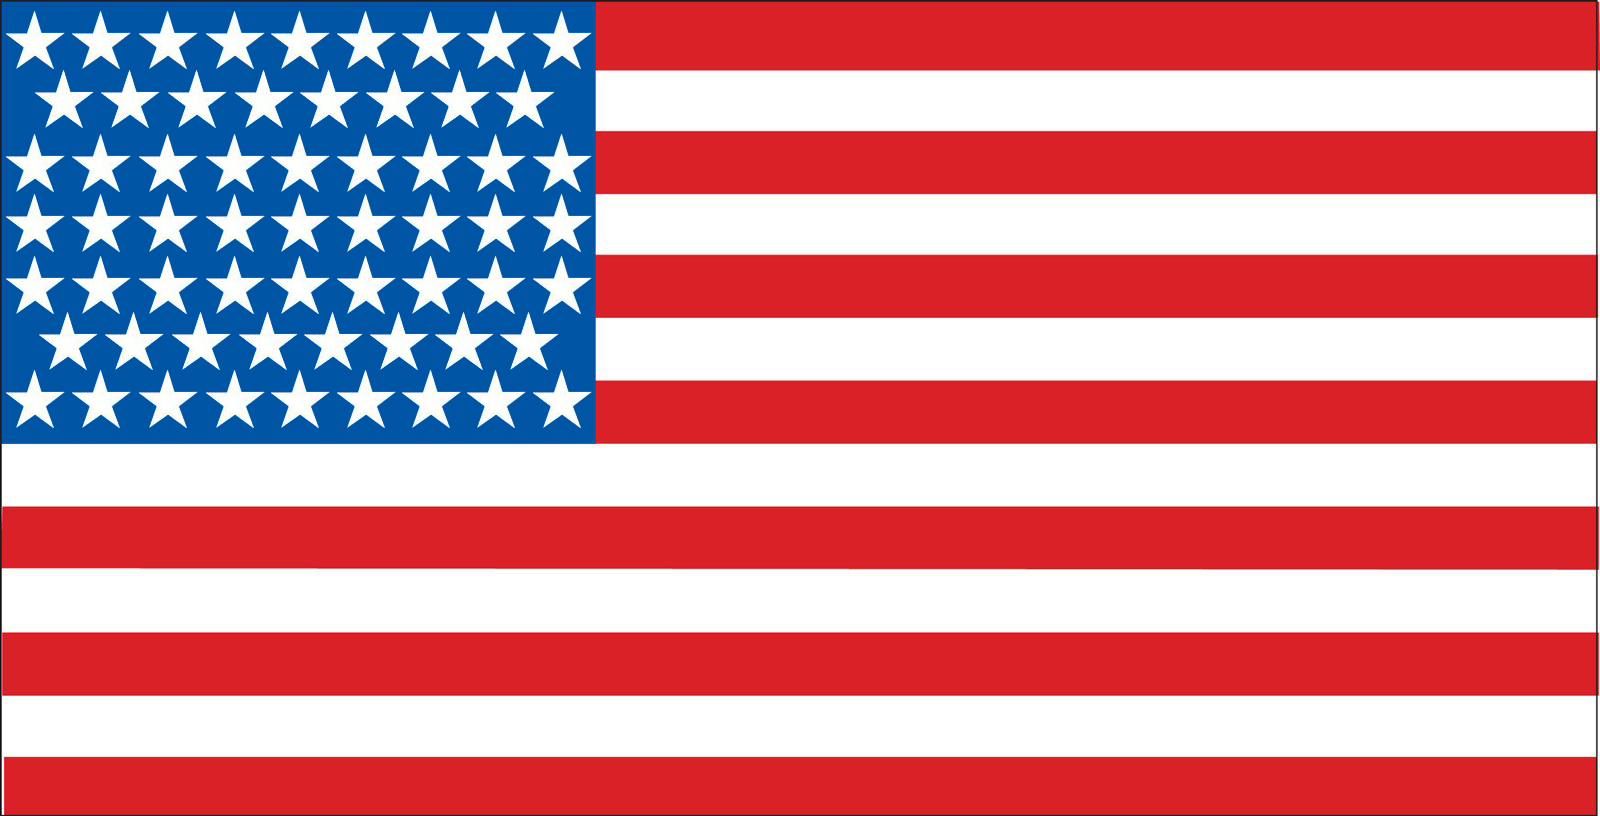 File Name Usa Flag Wallpaper Pictures to pin 1600x816